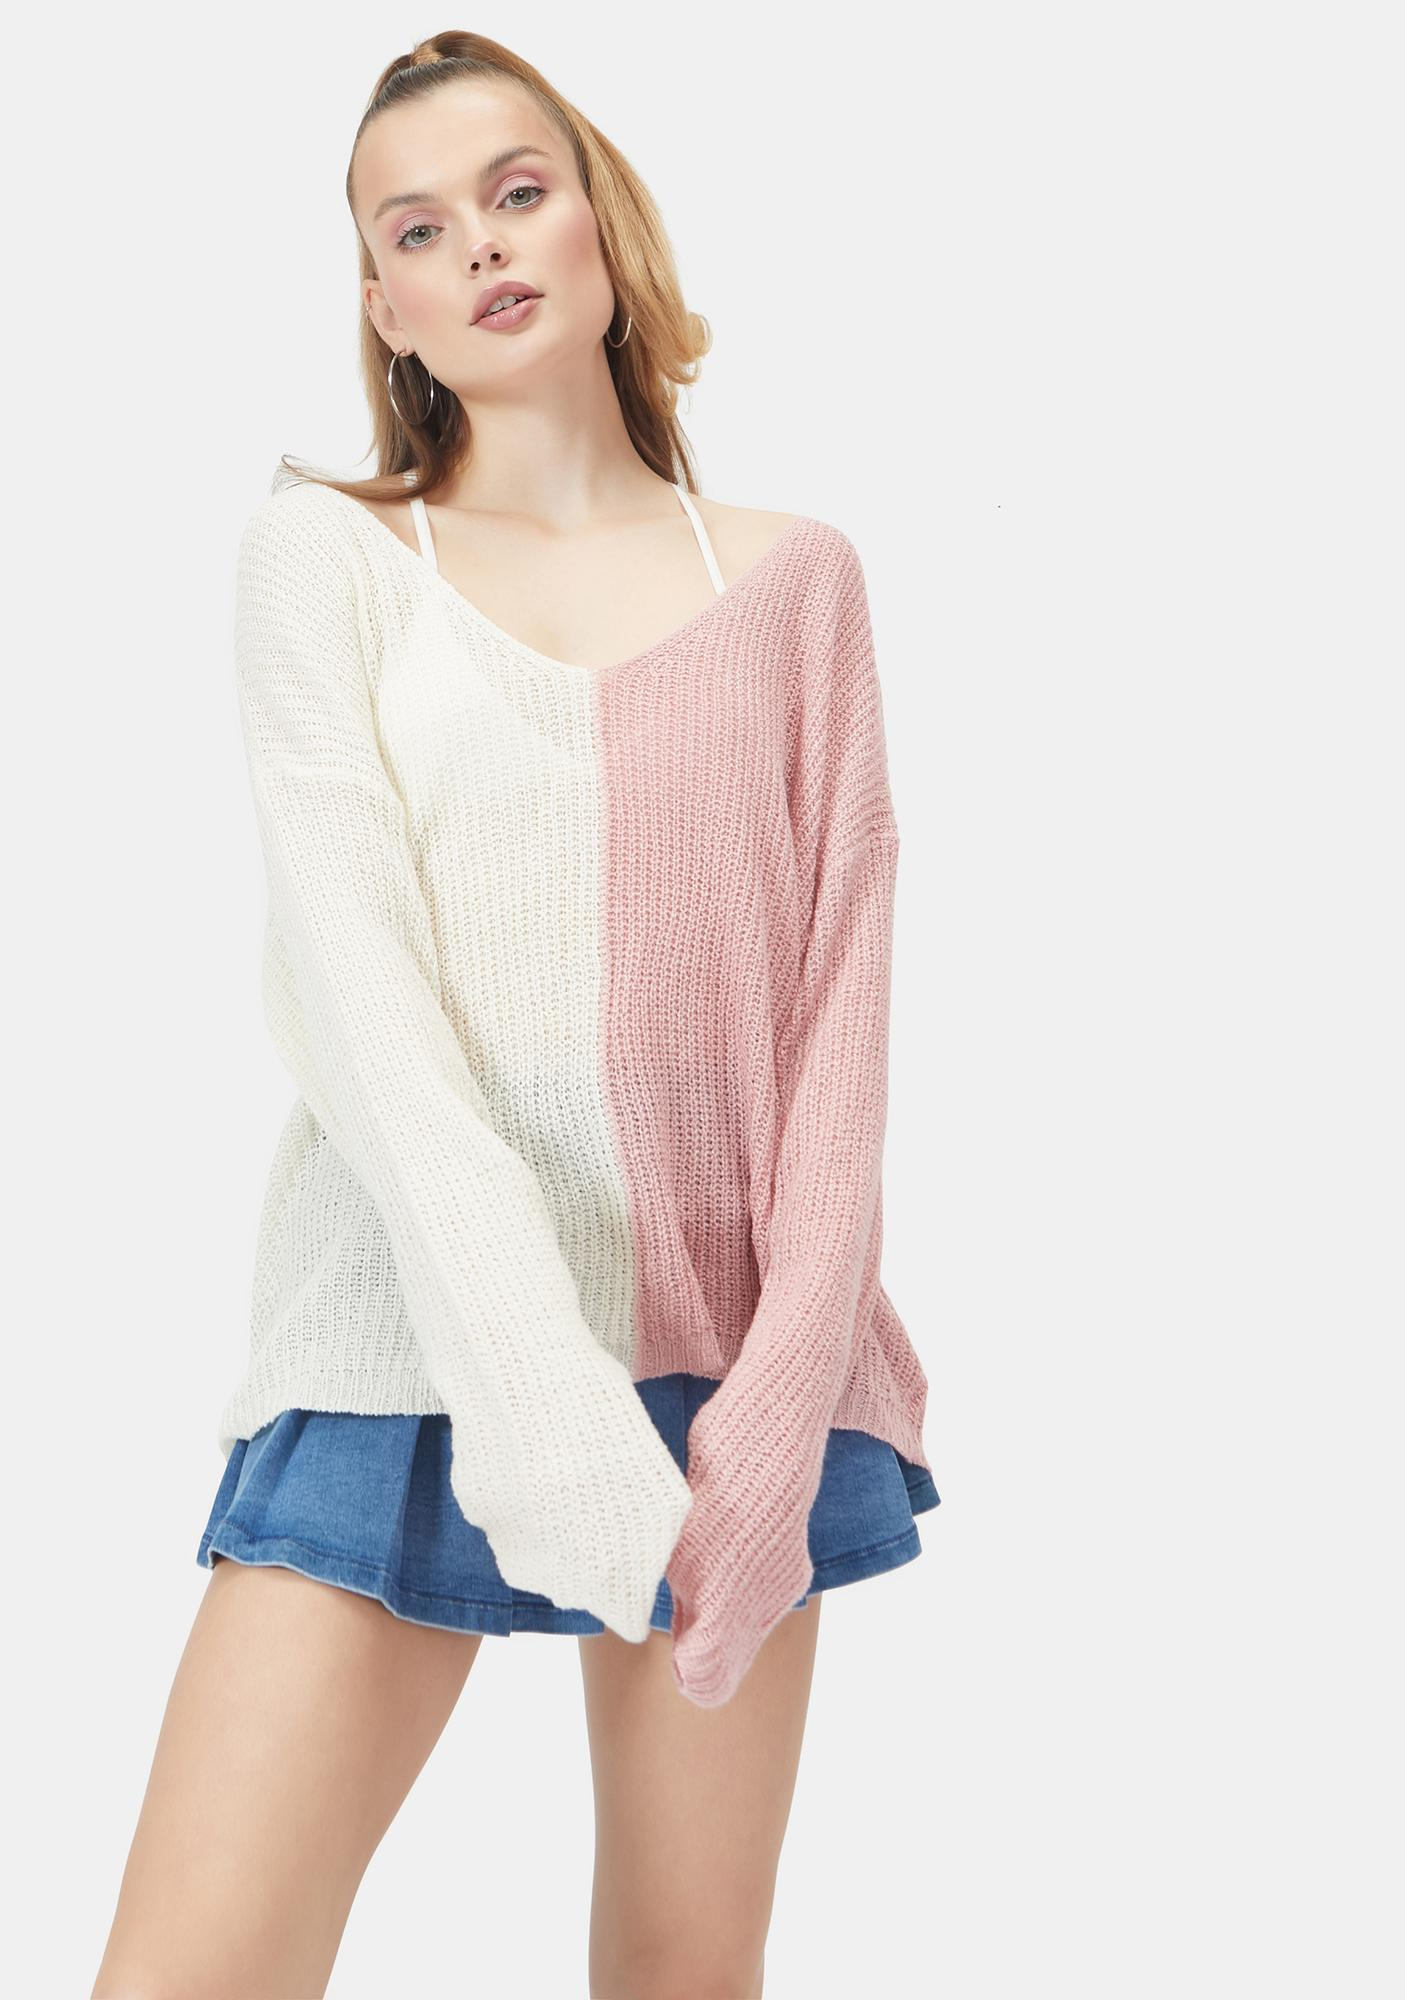 Sorbet What U Waiting For Colorblock Knit Sweater